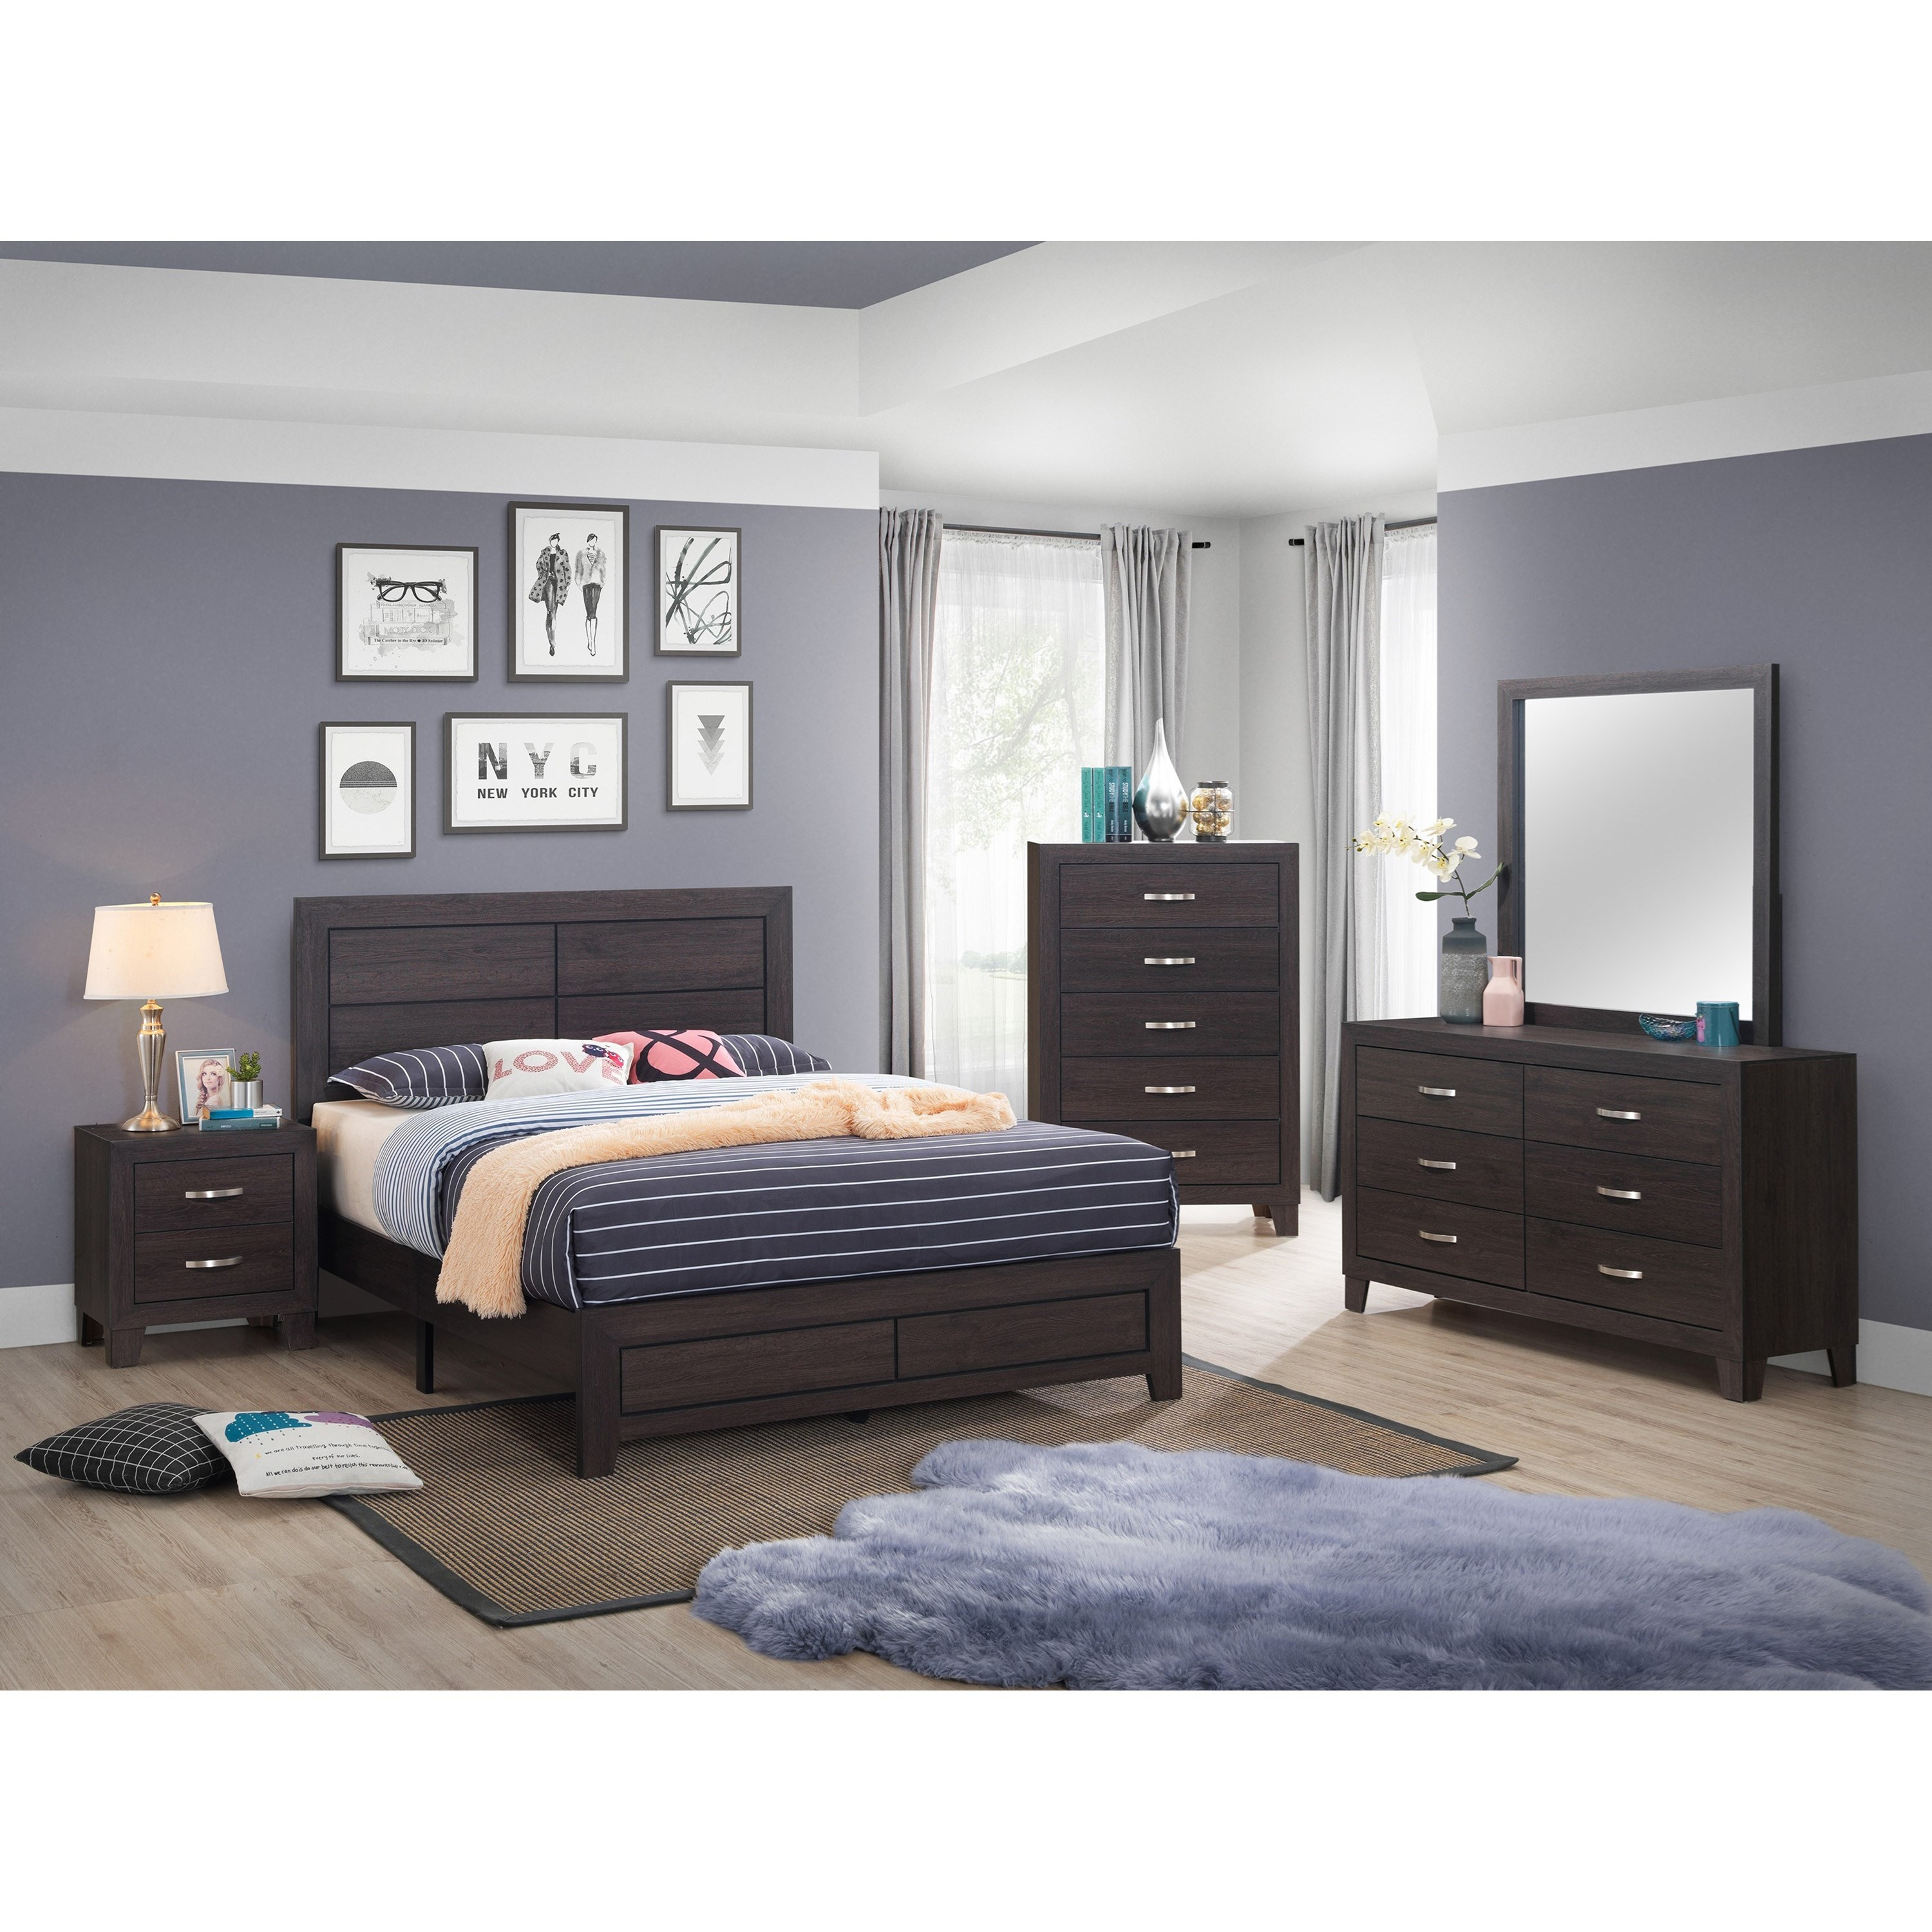 Hopkins Queen Bedroom Group by Crown Mark at Northeast Factory Direct